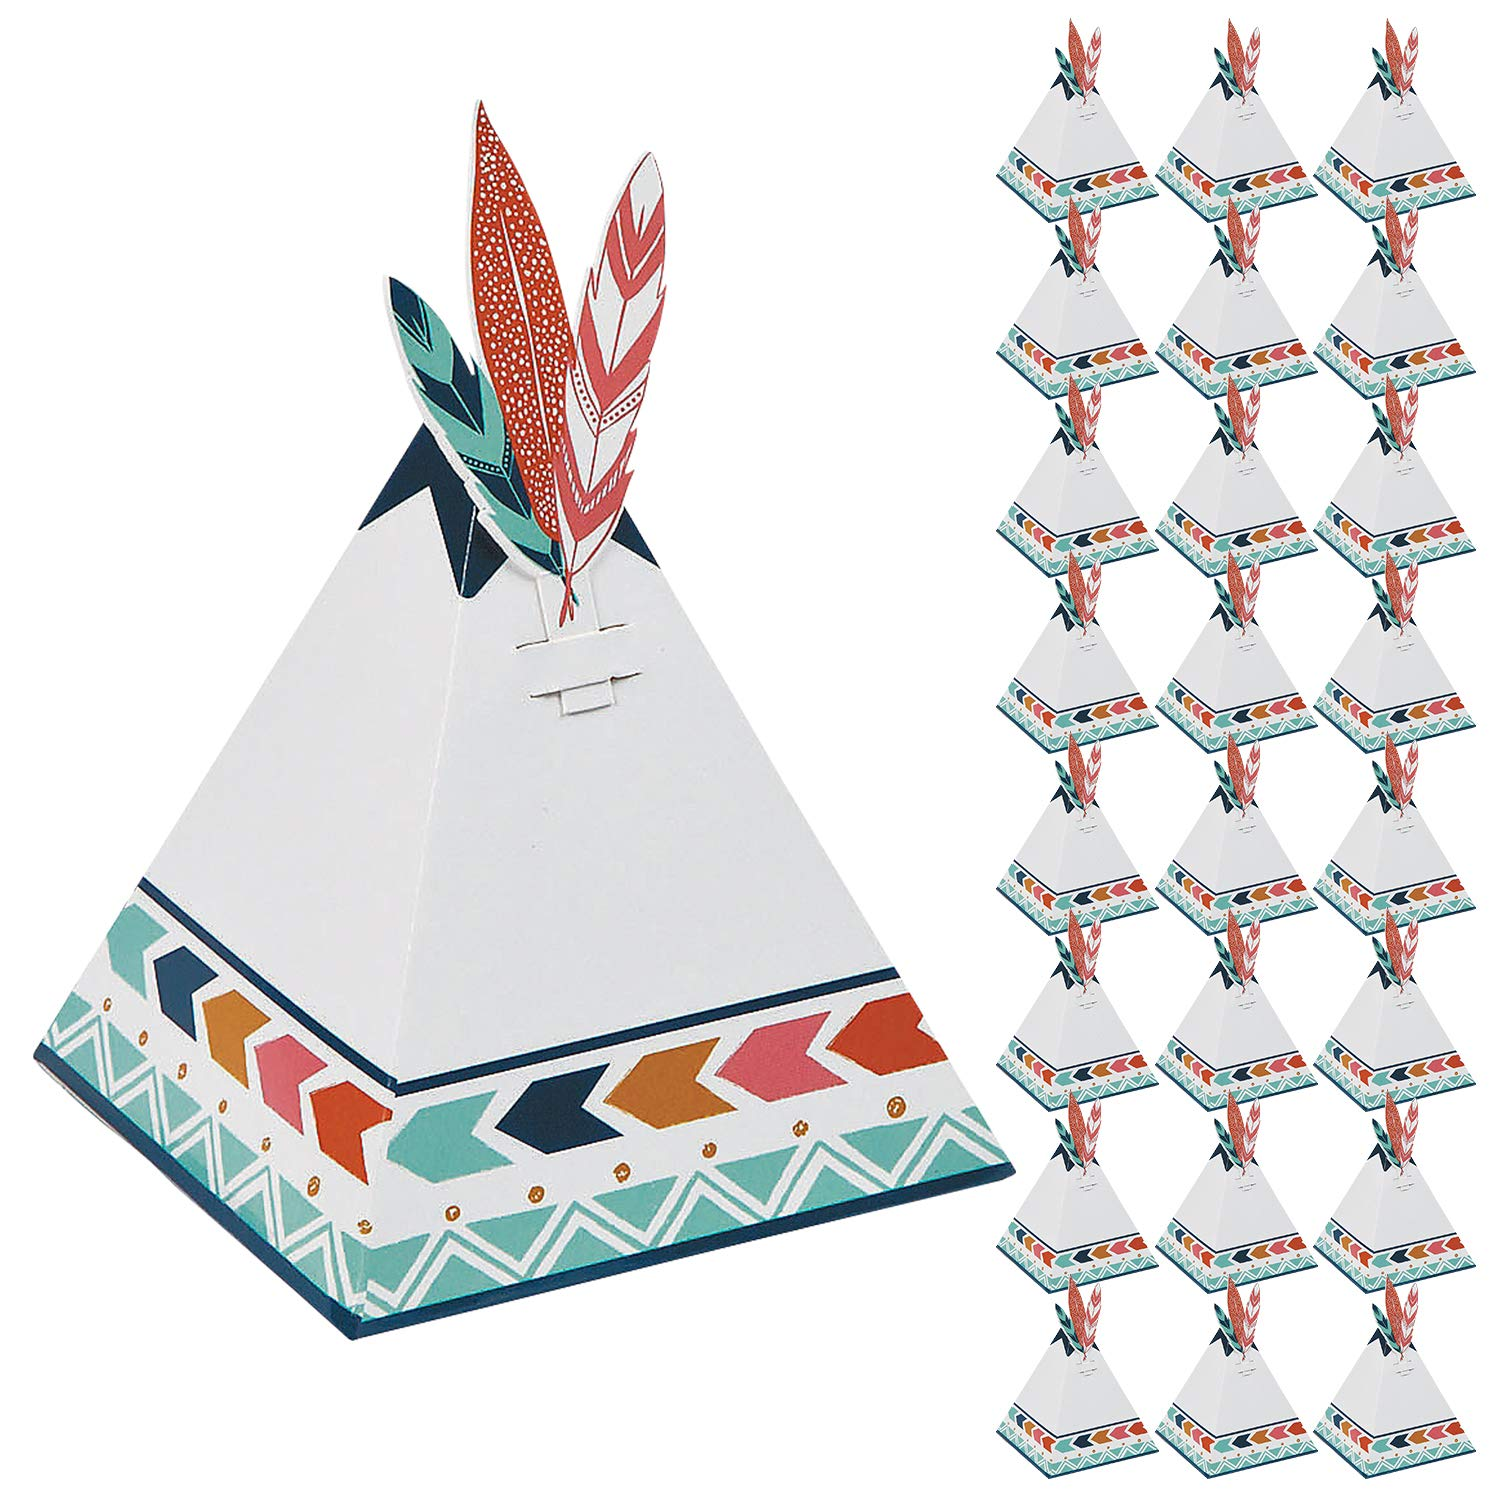 Boho Tribal Tent Party Favor Boxes 24 Pack